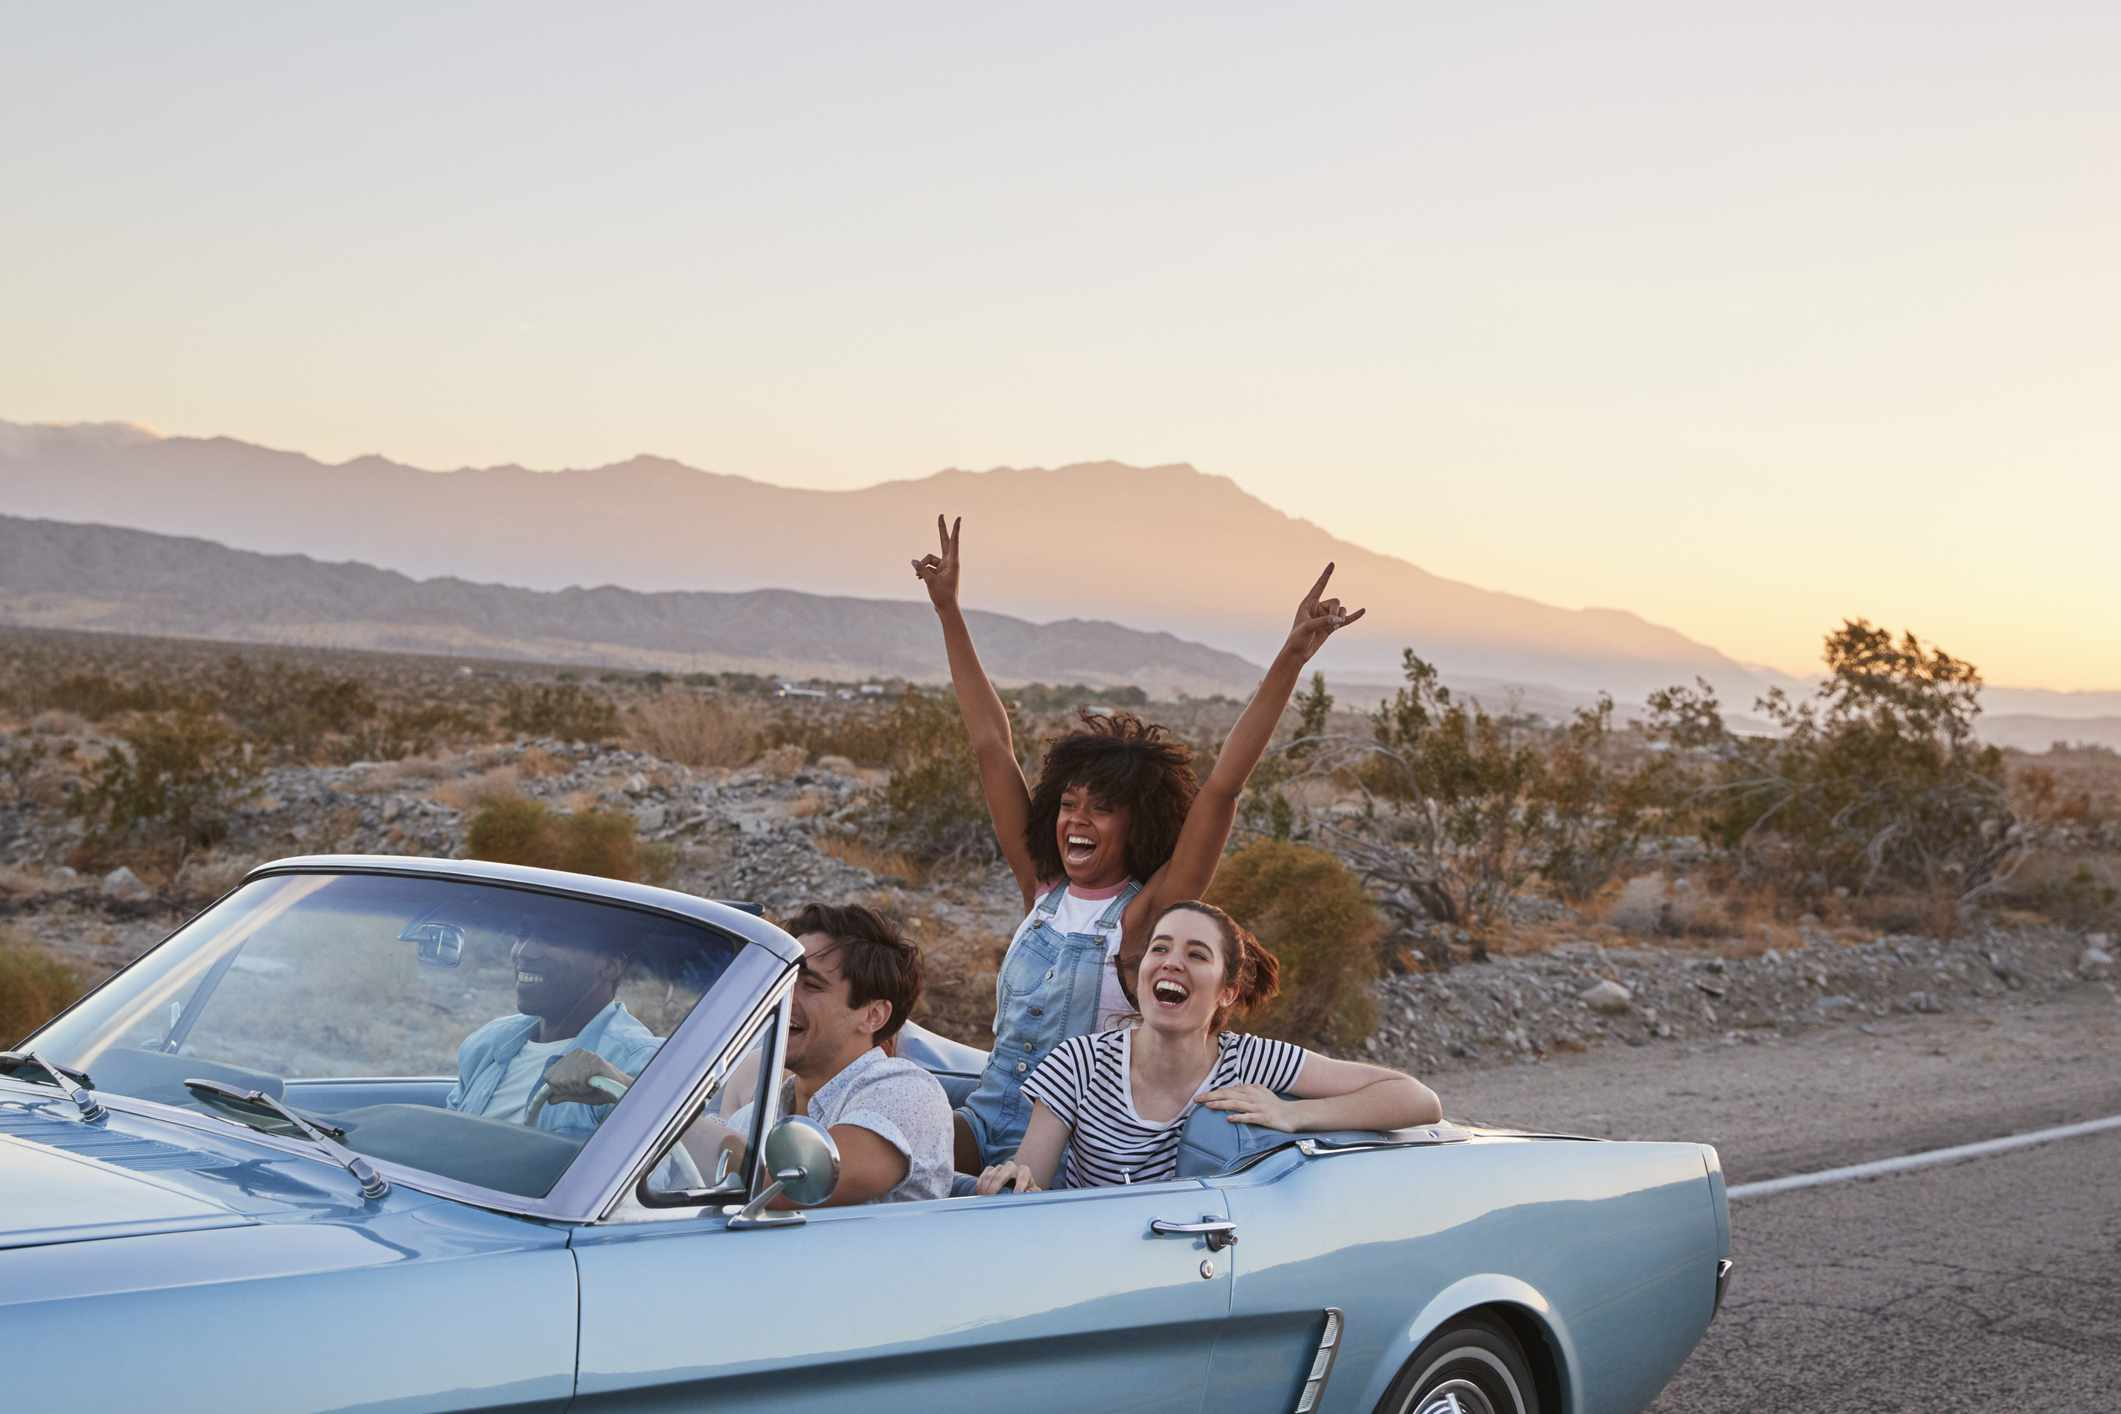 Four friends driving down a desert road in a convertible